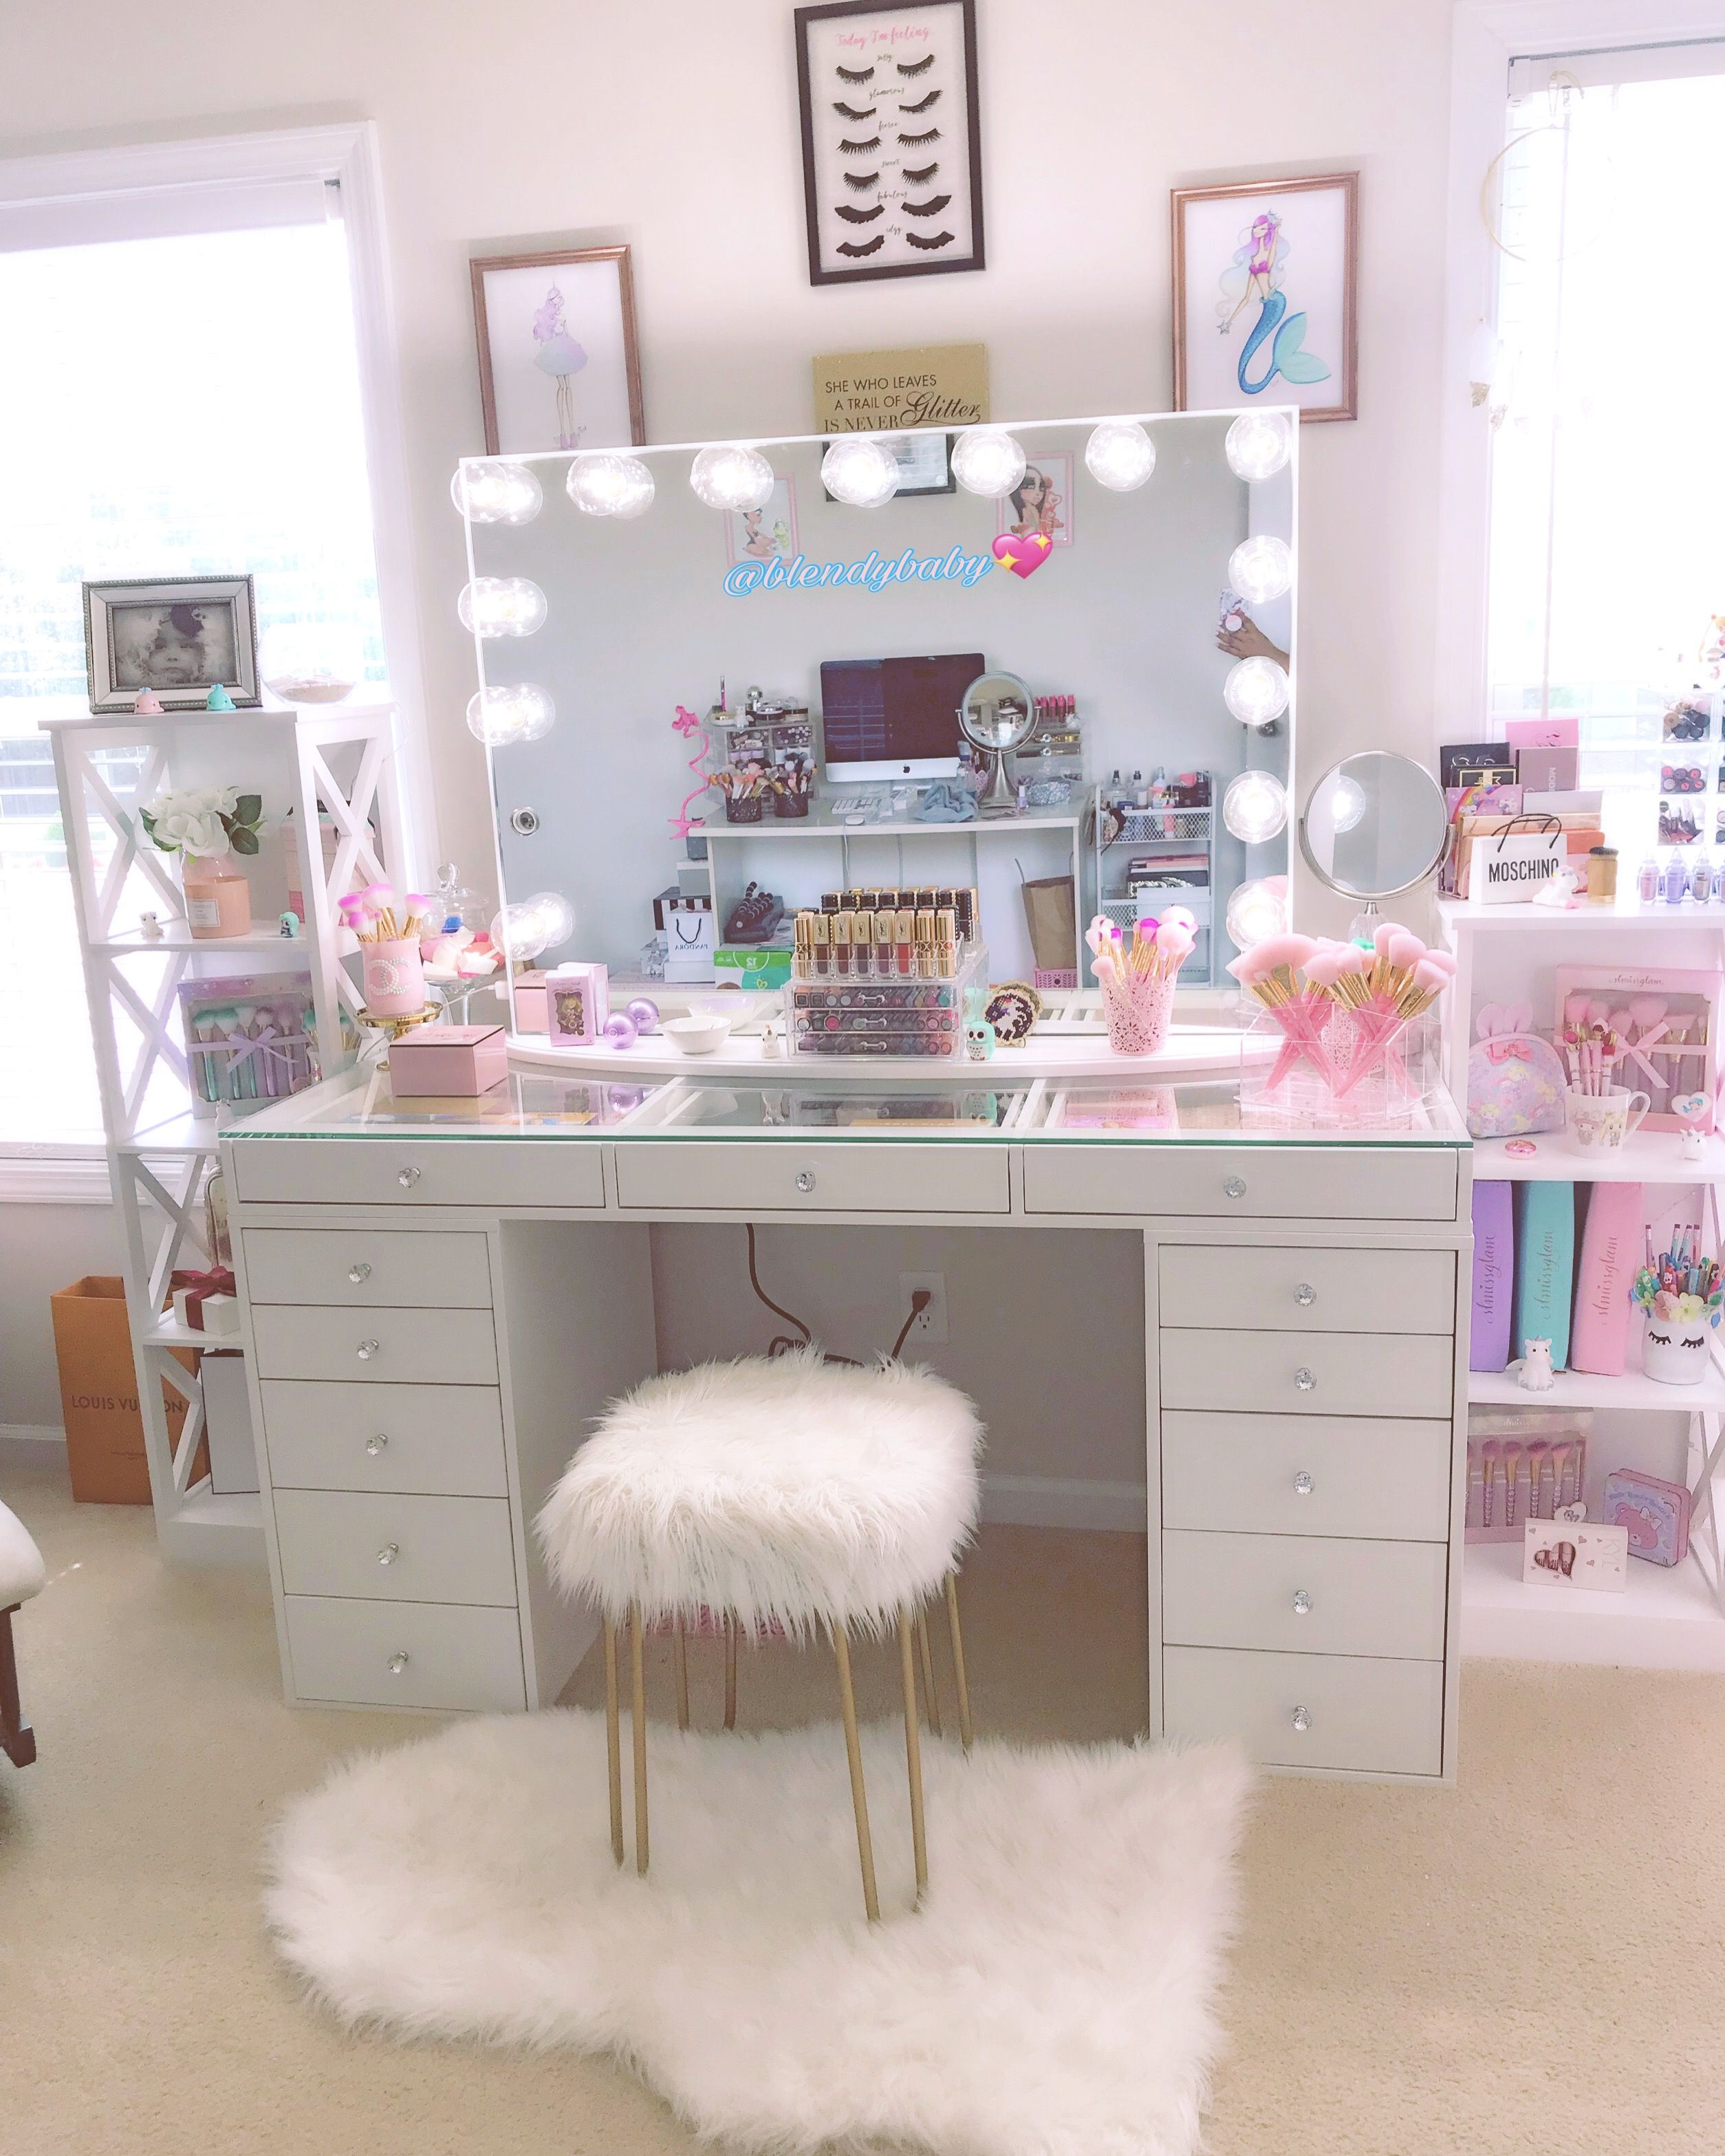 My Vanity Maquillaje Makeupvanity Makeuproom Vanity Makeup Diy Vanity Table Vanity Makeup Rooms Vanity Room